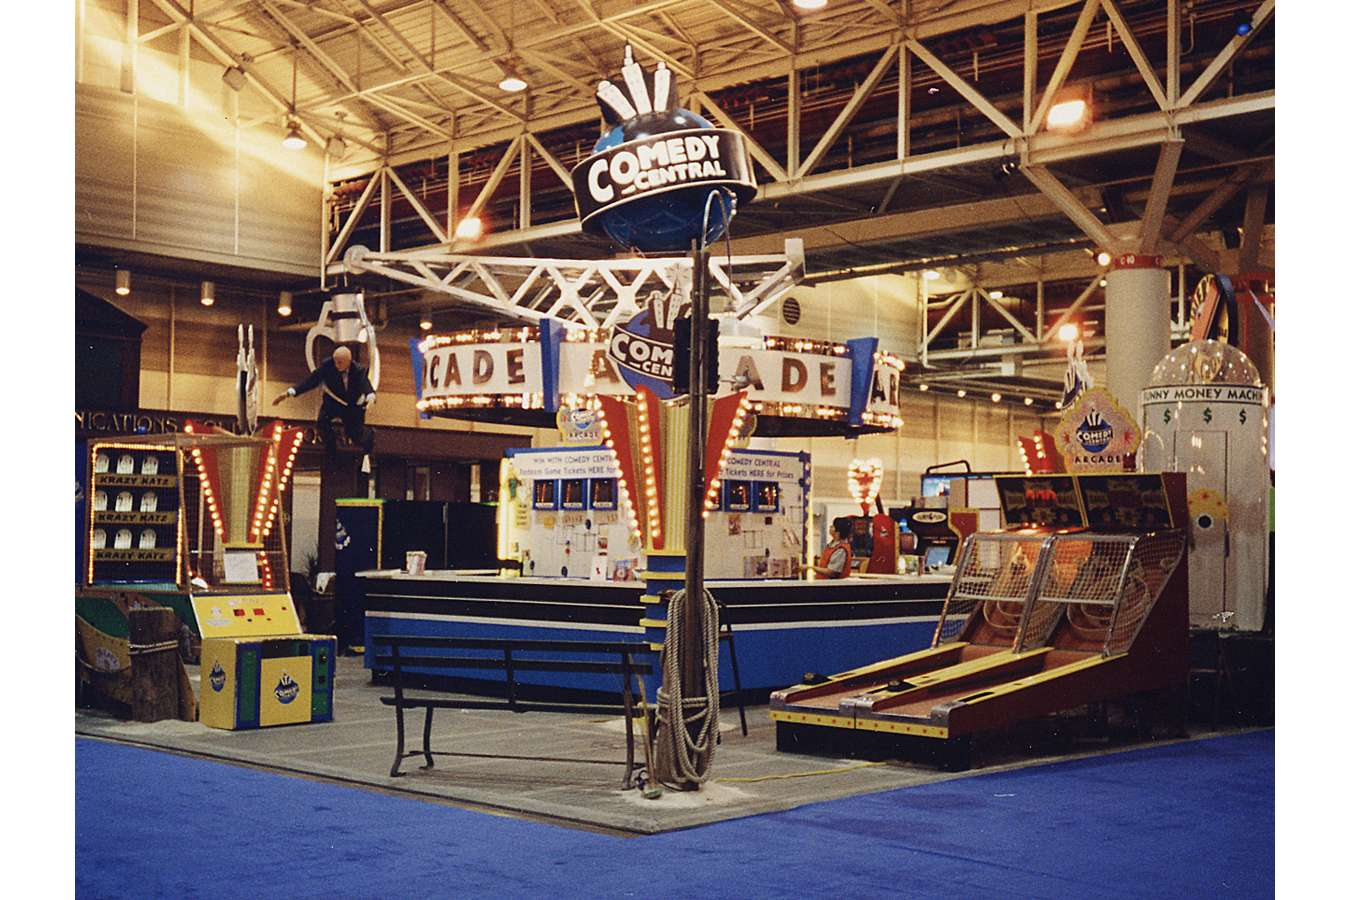 CC WSQ1 : Skee-Ball, Money-Grab, Basket-ball and Pin-ball machines scattered around booth